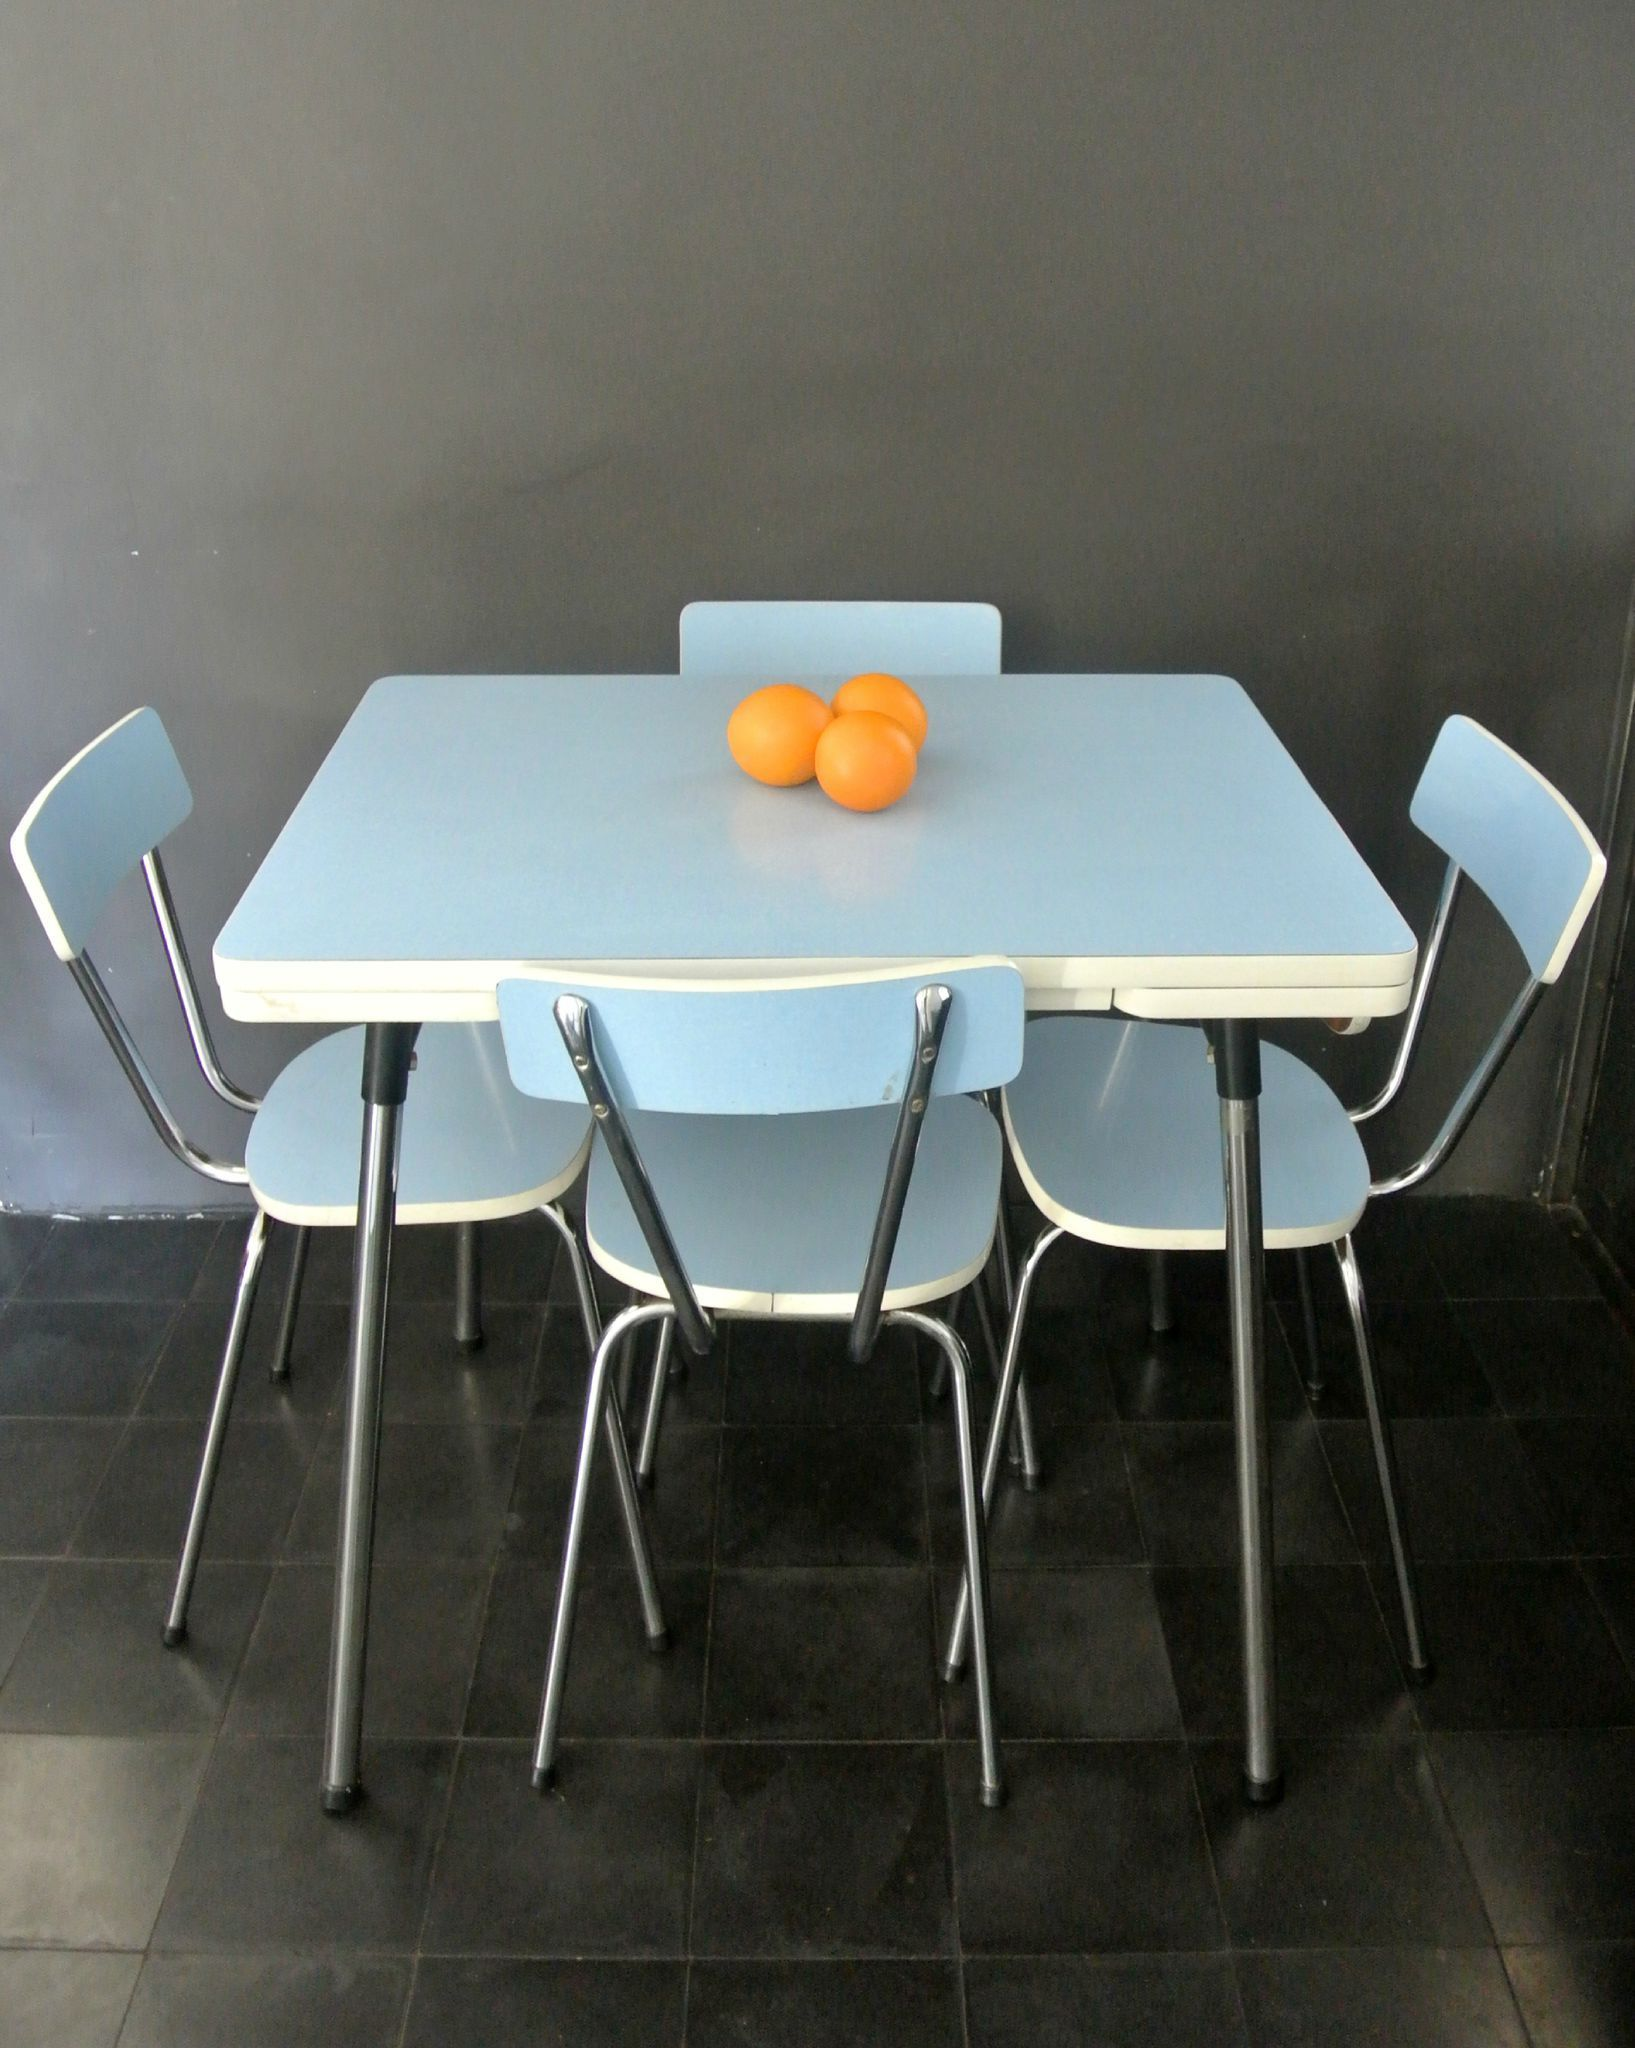 Table Cuisine Formica Anne 50 Affordable Cuisine Formica Vintage